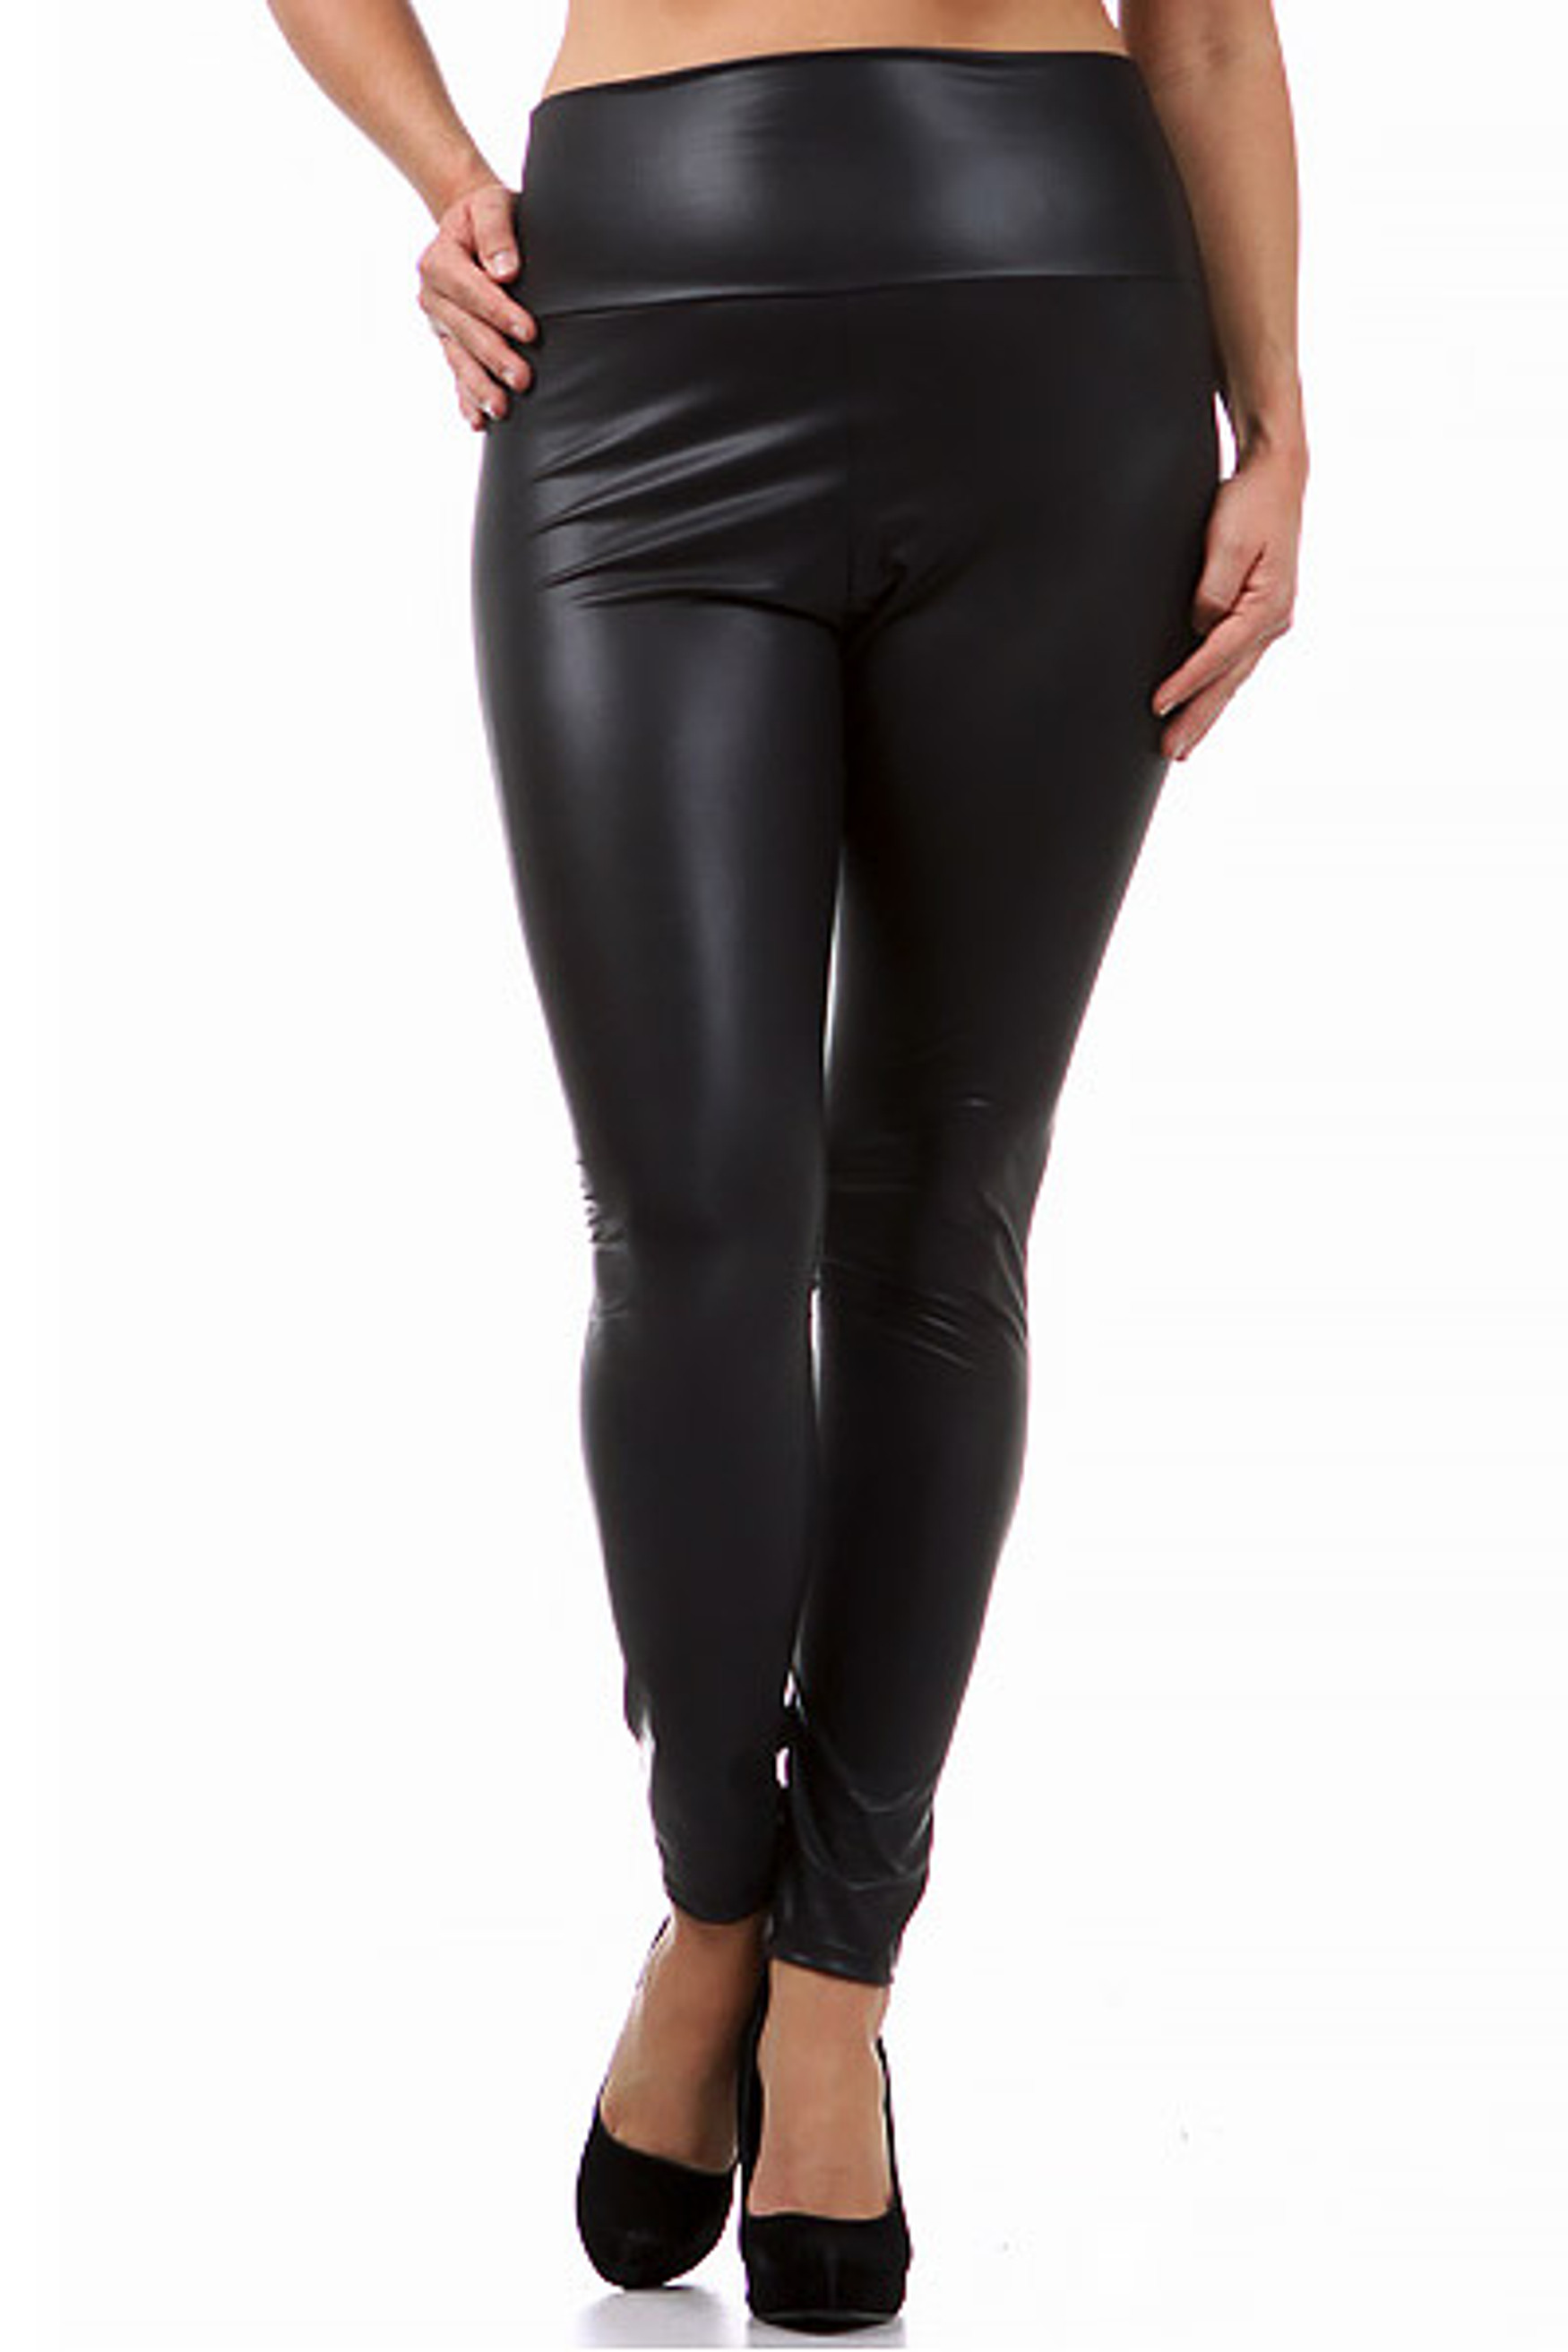 Matte High Waisted Faux Leather Plus Size Leggings